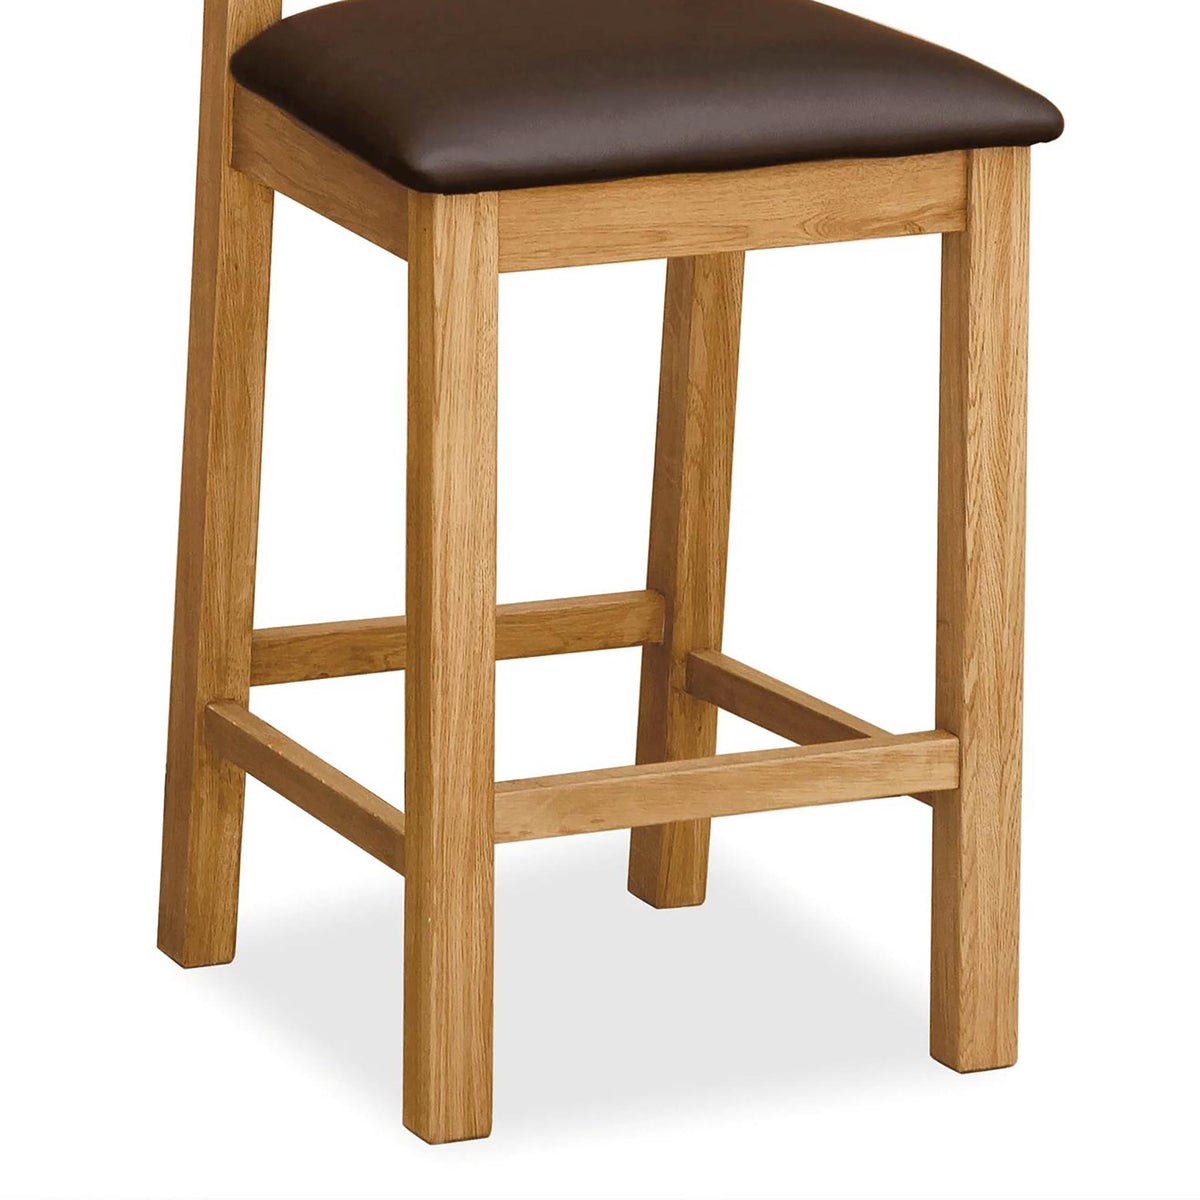 Sidmouth Oak Crossed Back Bar Stool - Close Up of Legs and Padded Seat